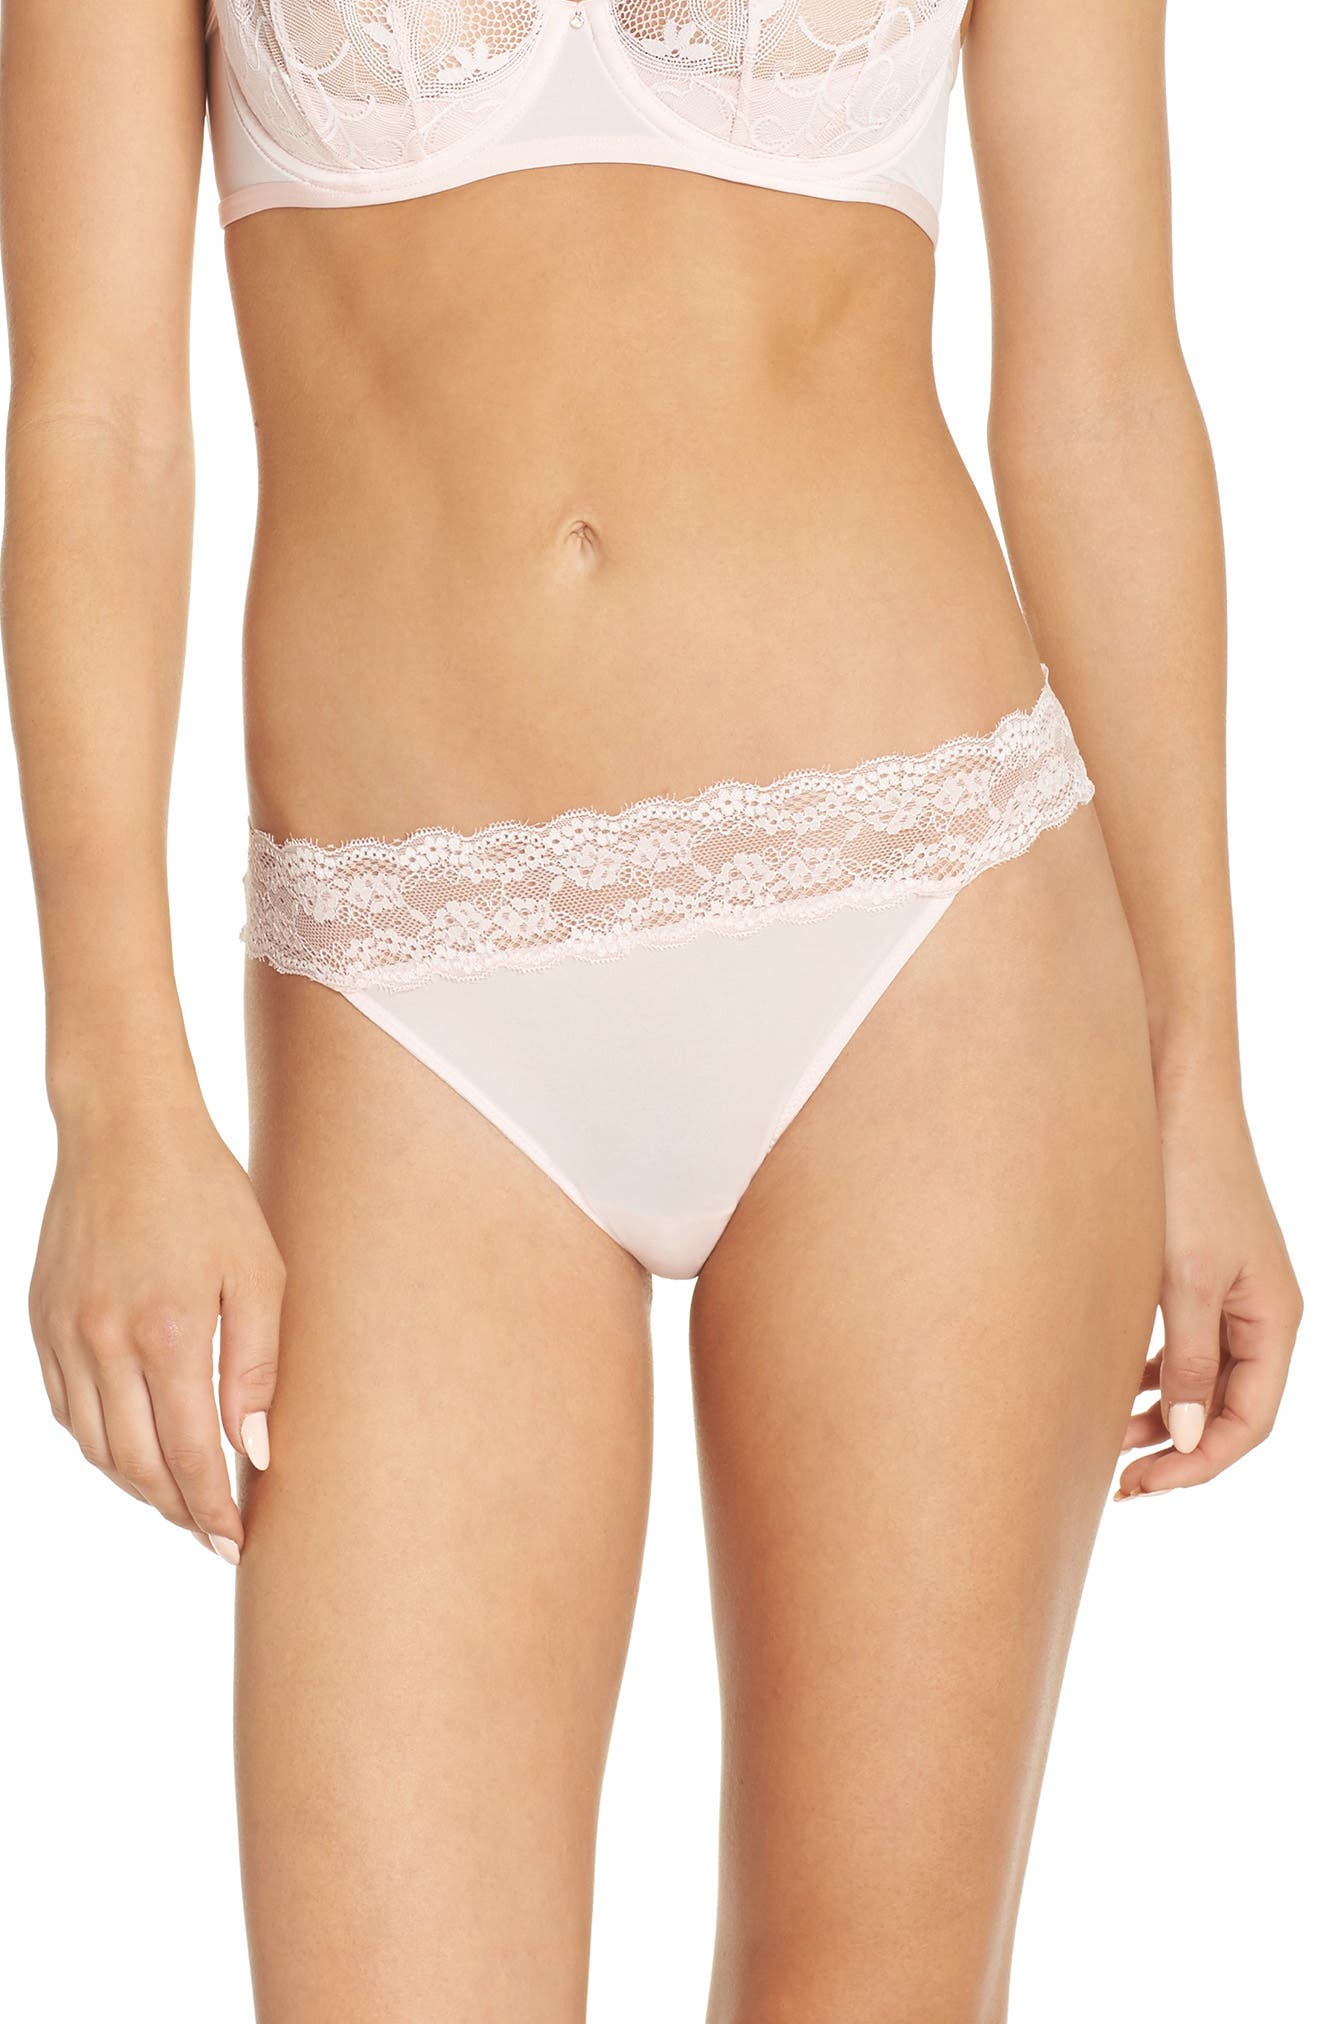 Betsey Johnson Lovely Lace Open Back Bikini (3 for $33)